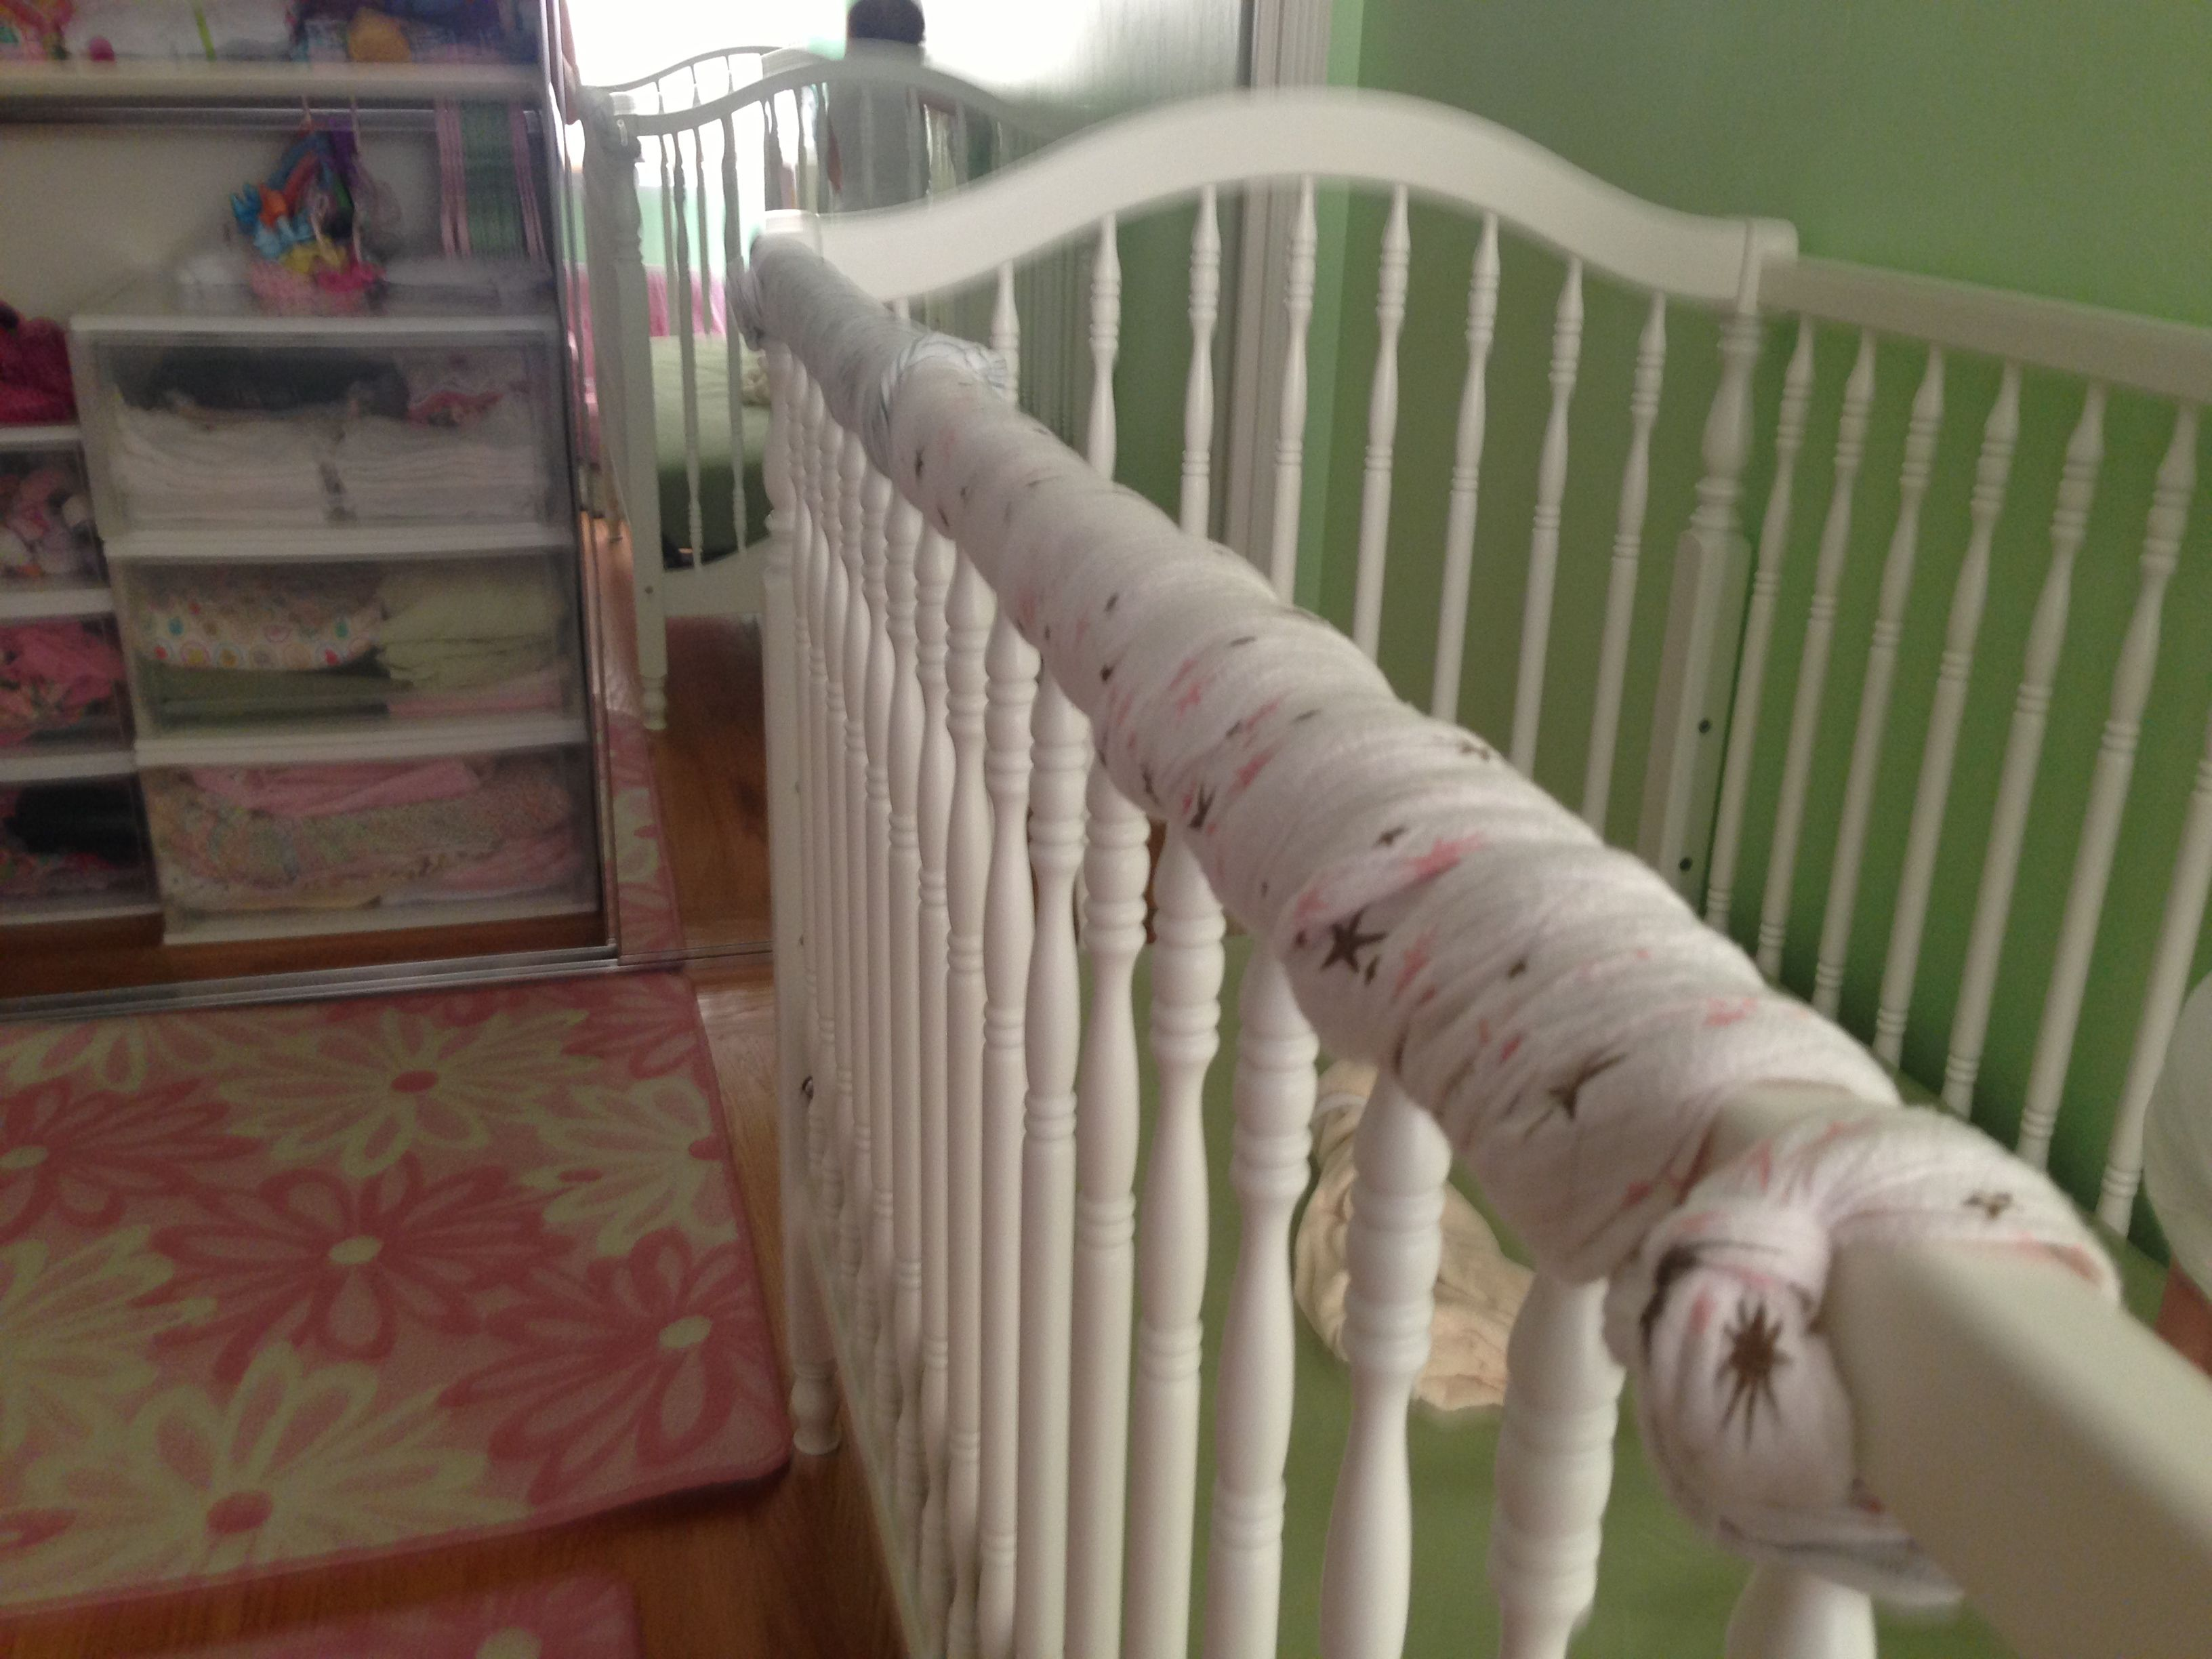 Baby bed gates - Baby Bed Gates 16